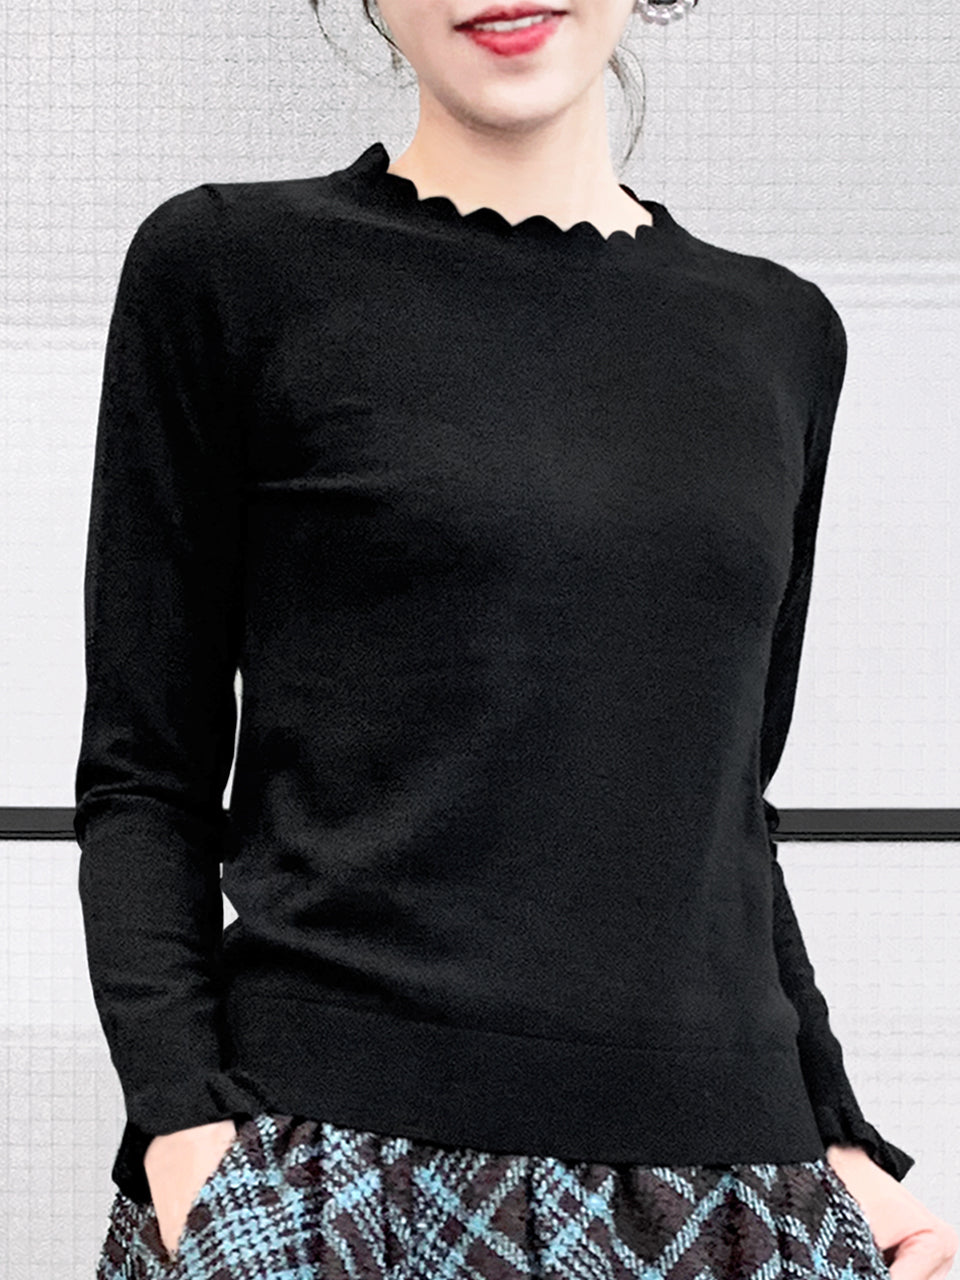 Surprise Sale! Black Scallop Neck Ruffle Cuffs Cashmere Wool Blend Sweater